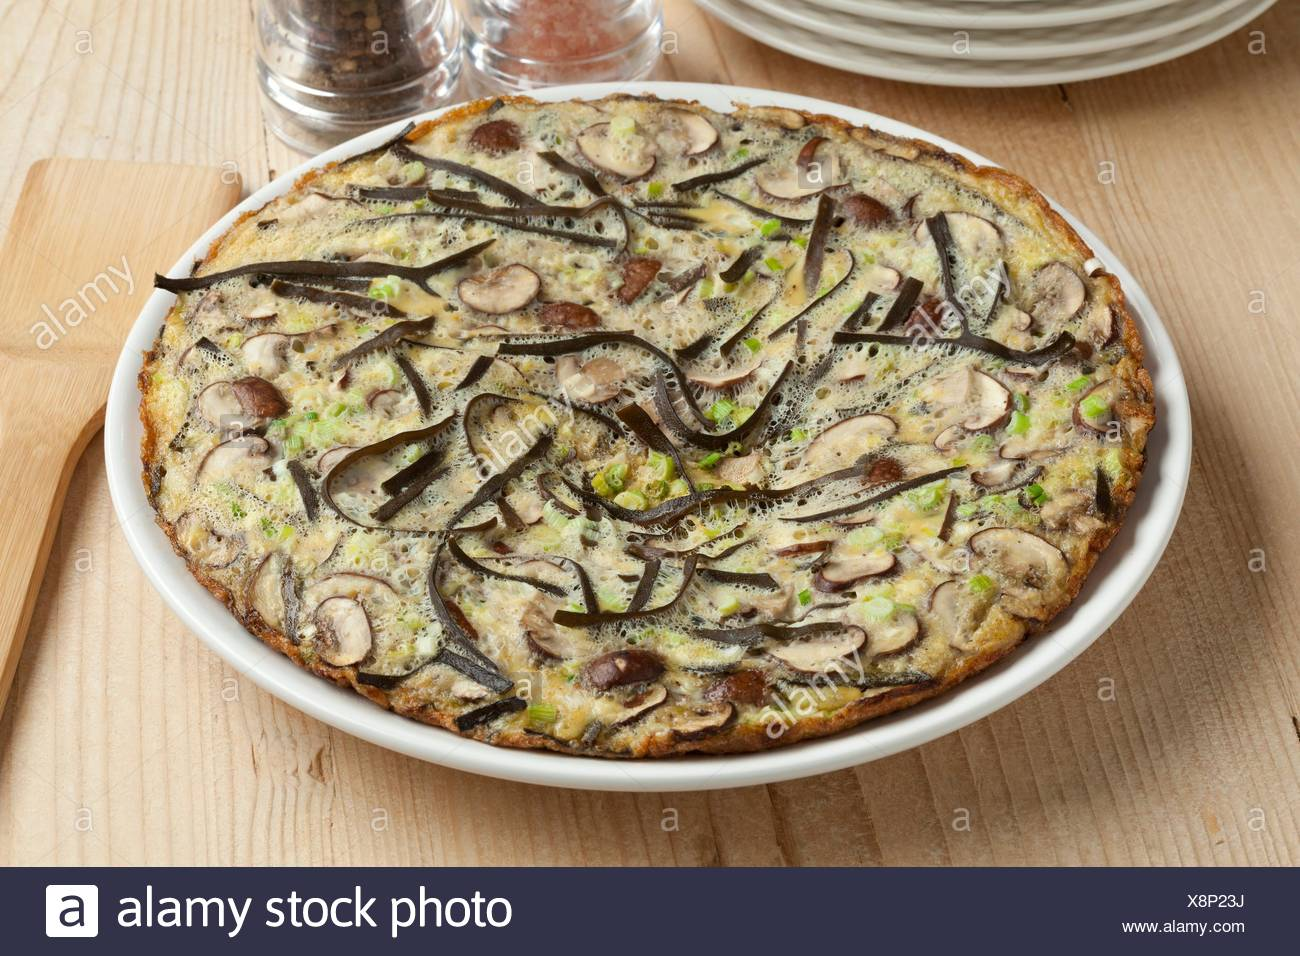 Omelet with sea spaghetti, mushrooms and spring onions. - Stock Image